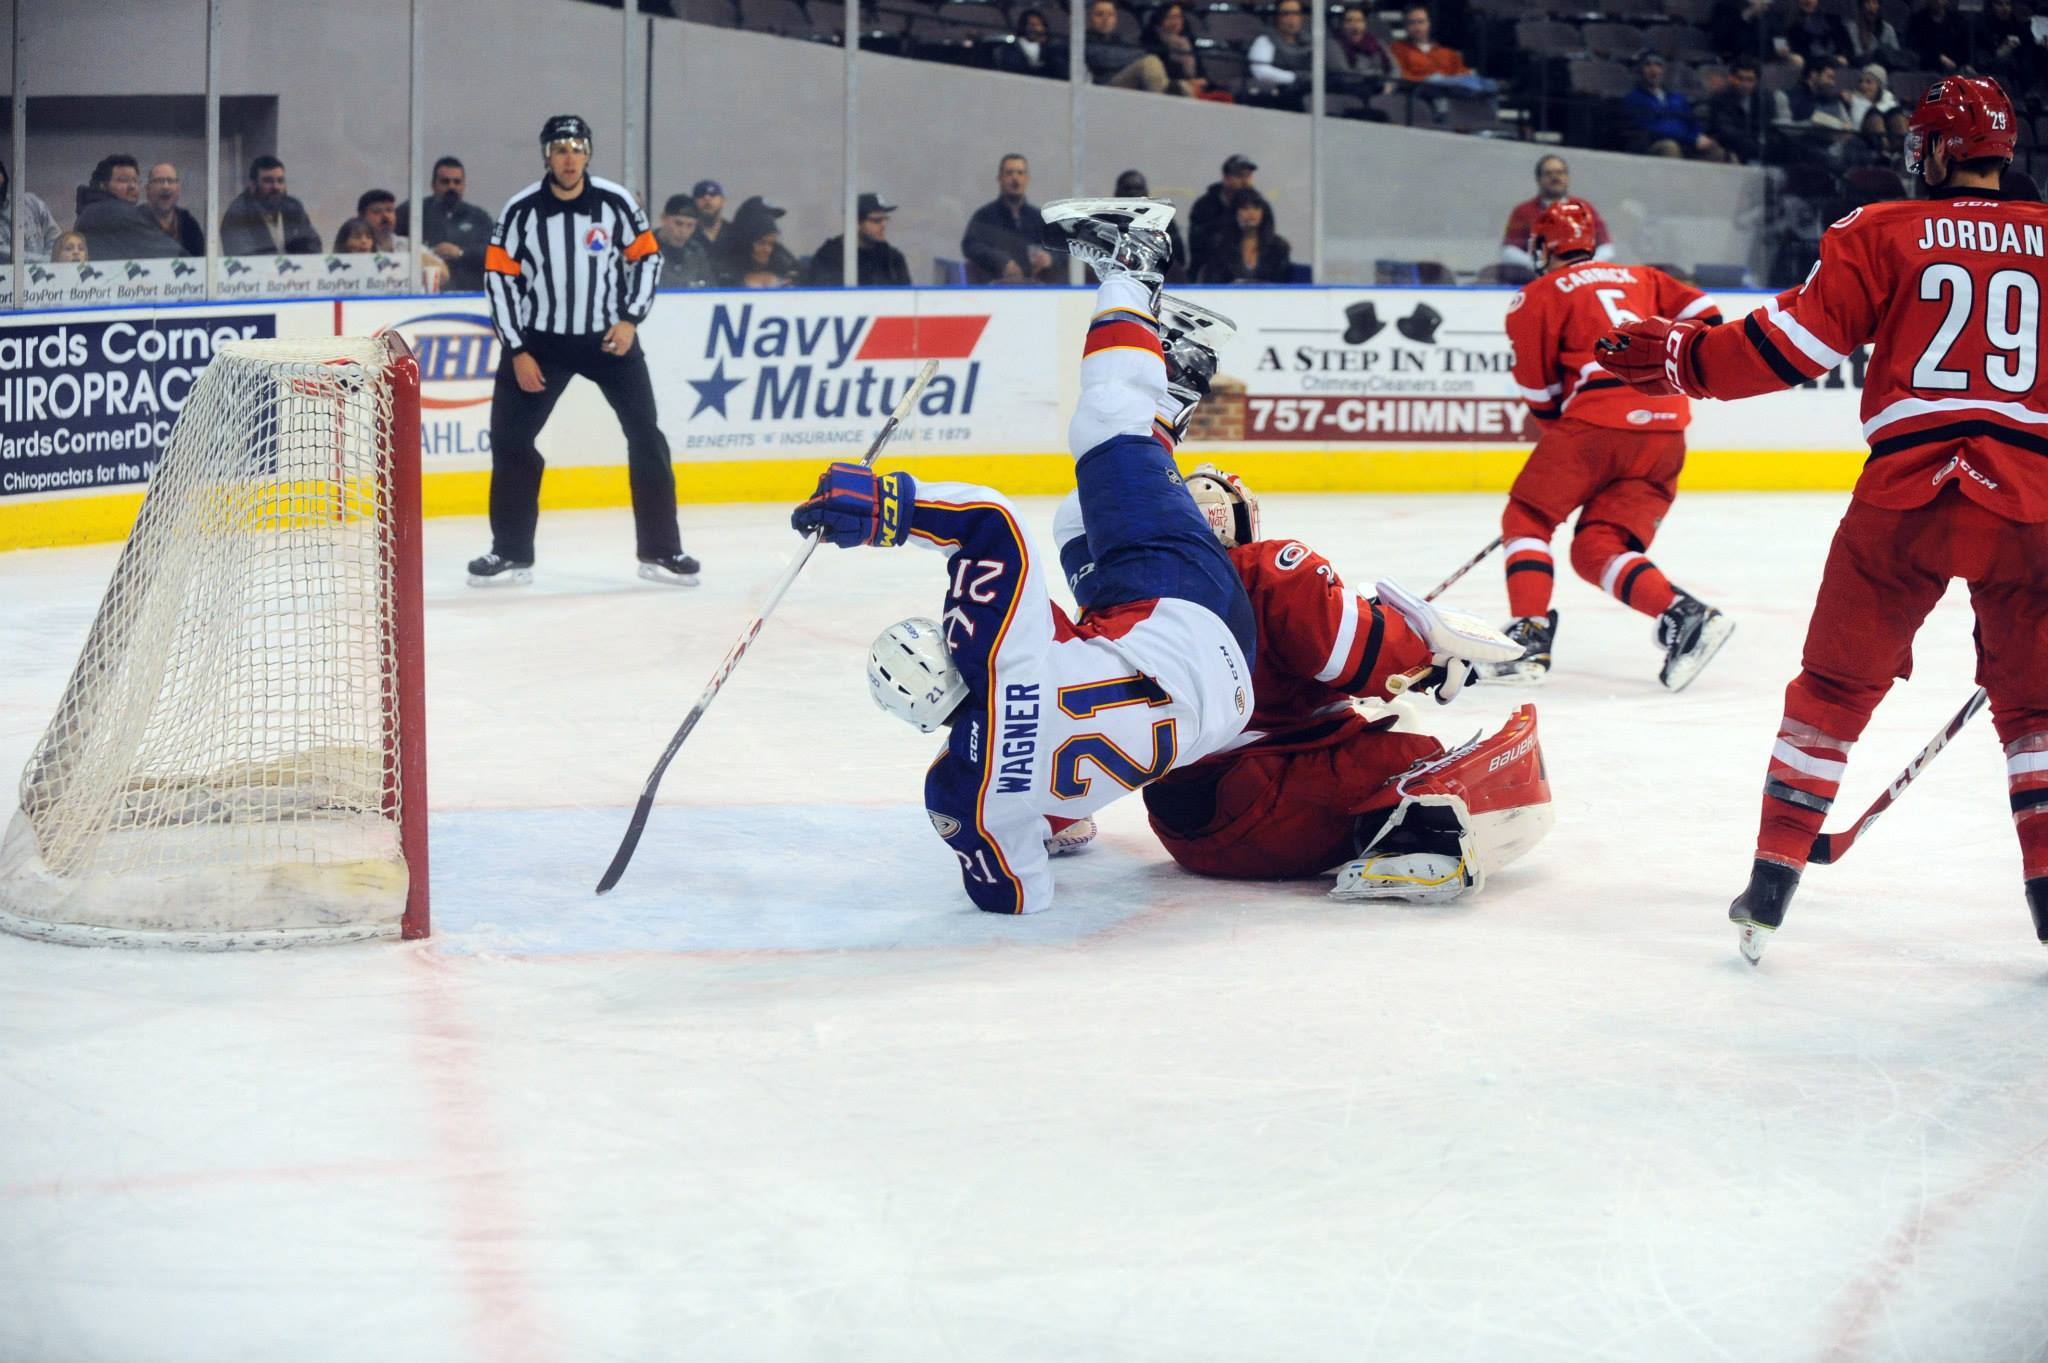 Chris Wagner drives the net against the Charlotte Checkers Jan 21, 2015